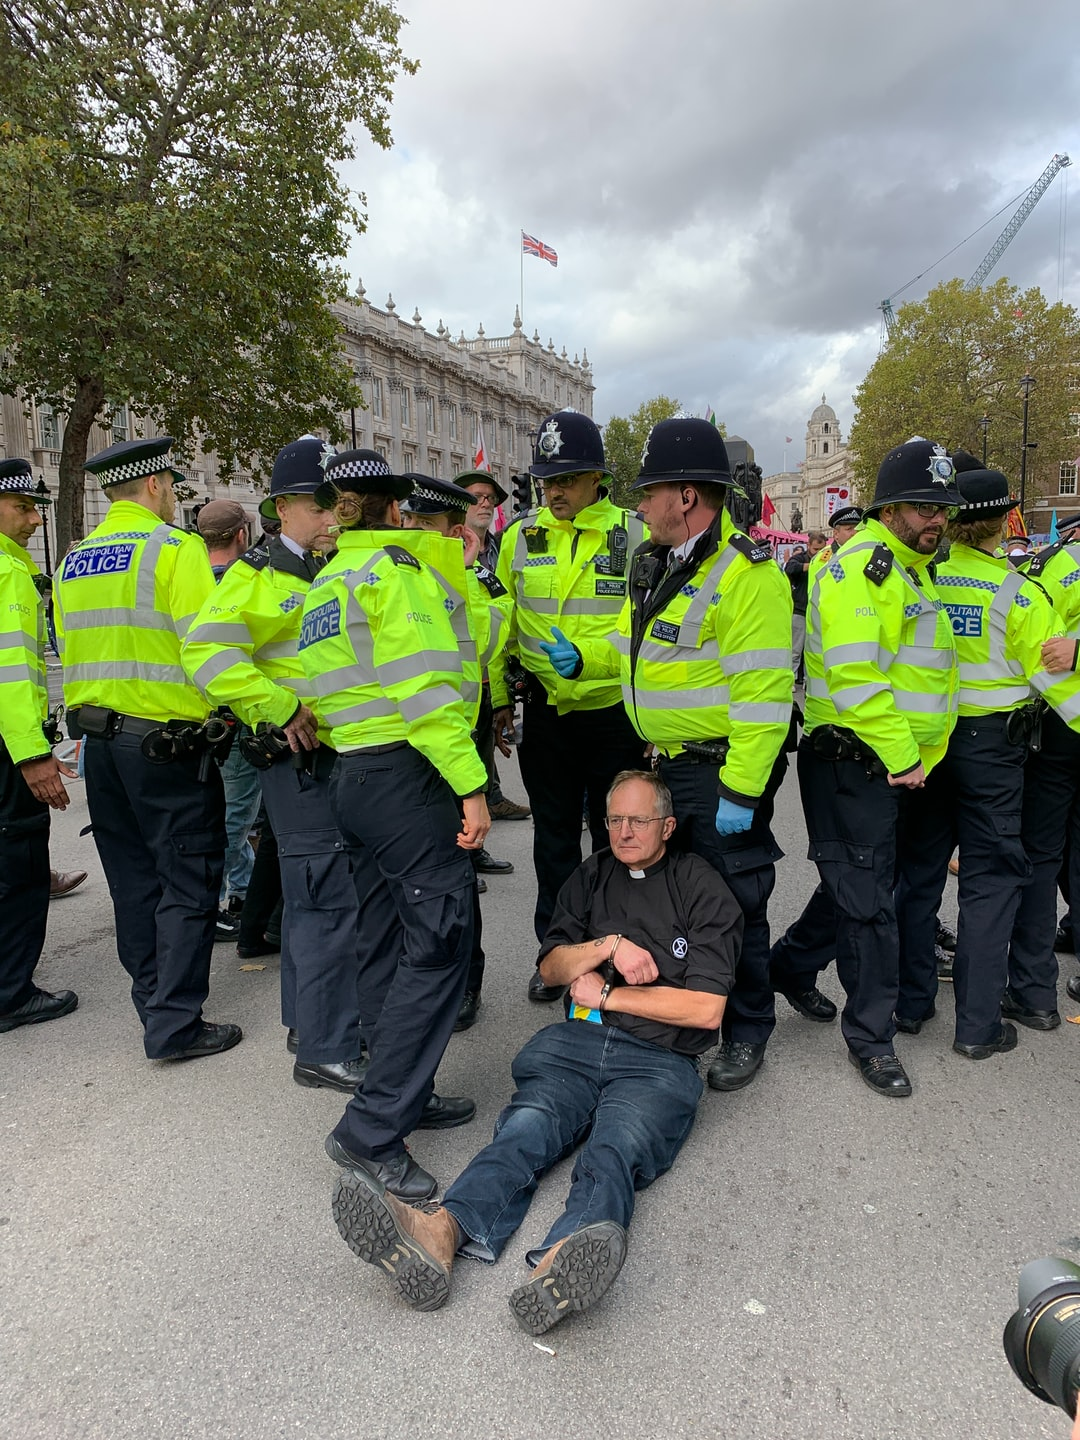 A vicar is about to be arrested for blocking Whitehall during the Extinction Rebellion protests, October 2019